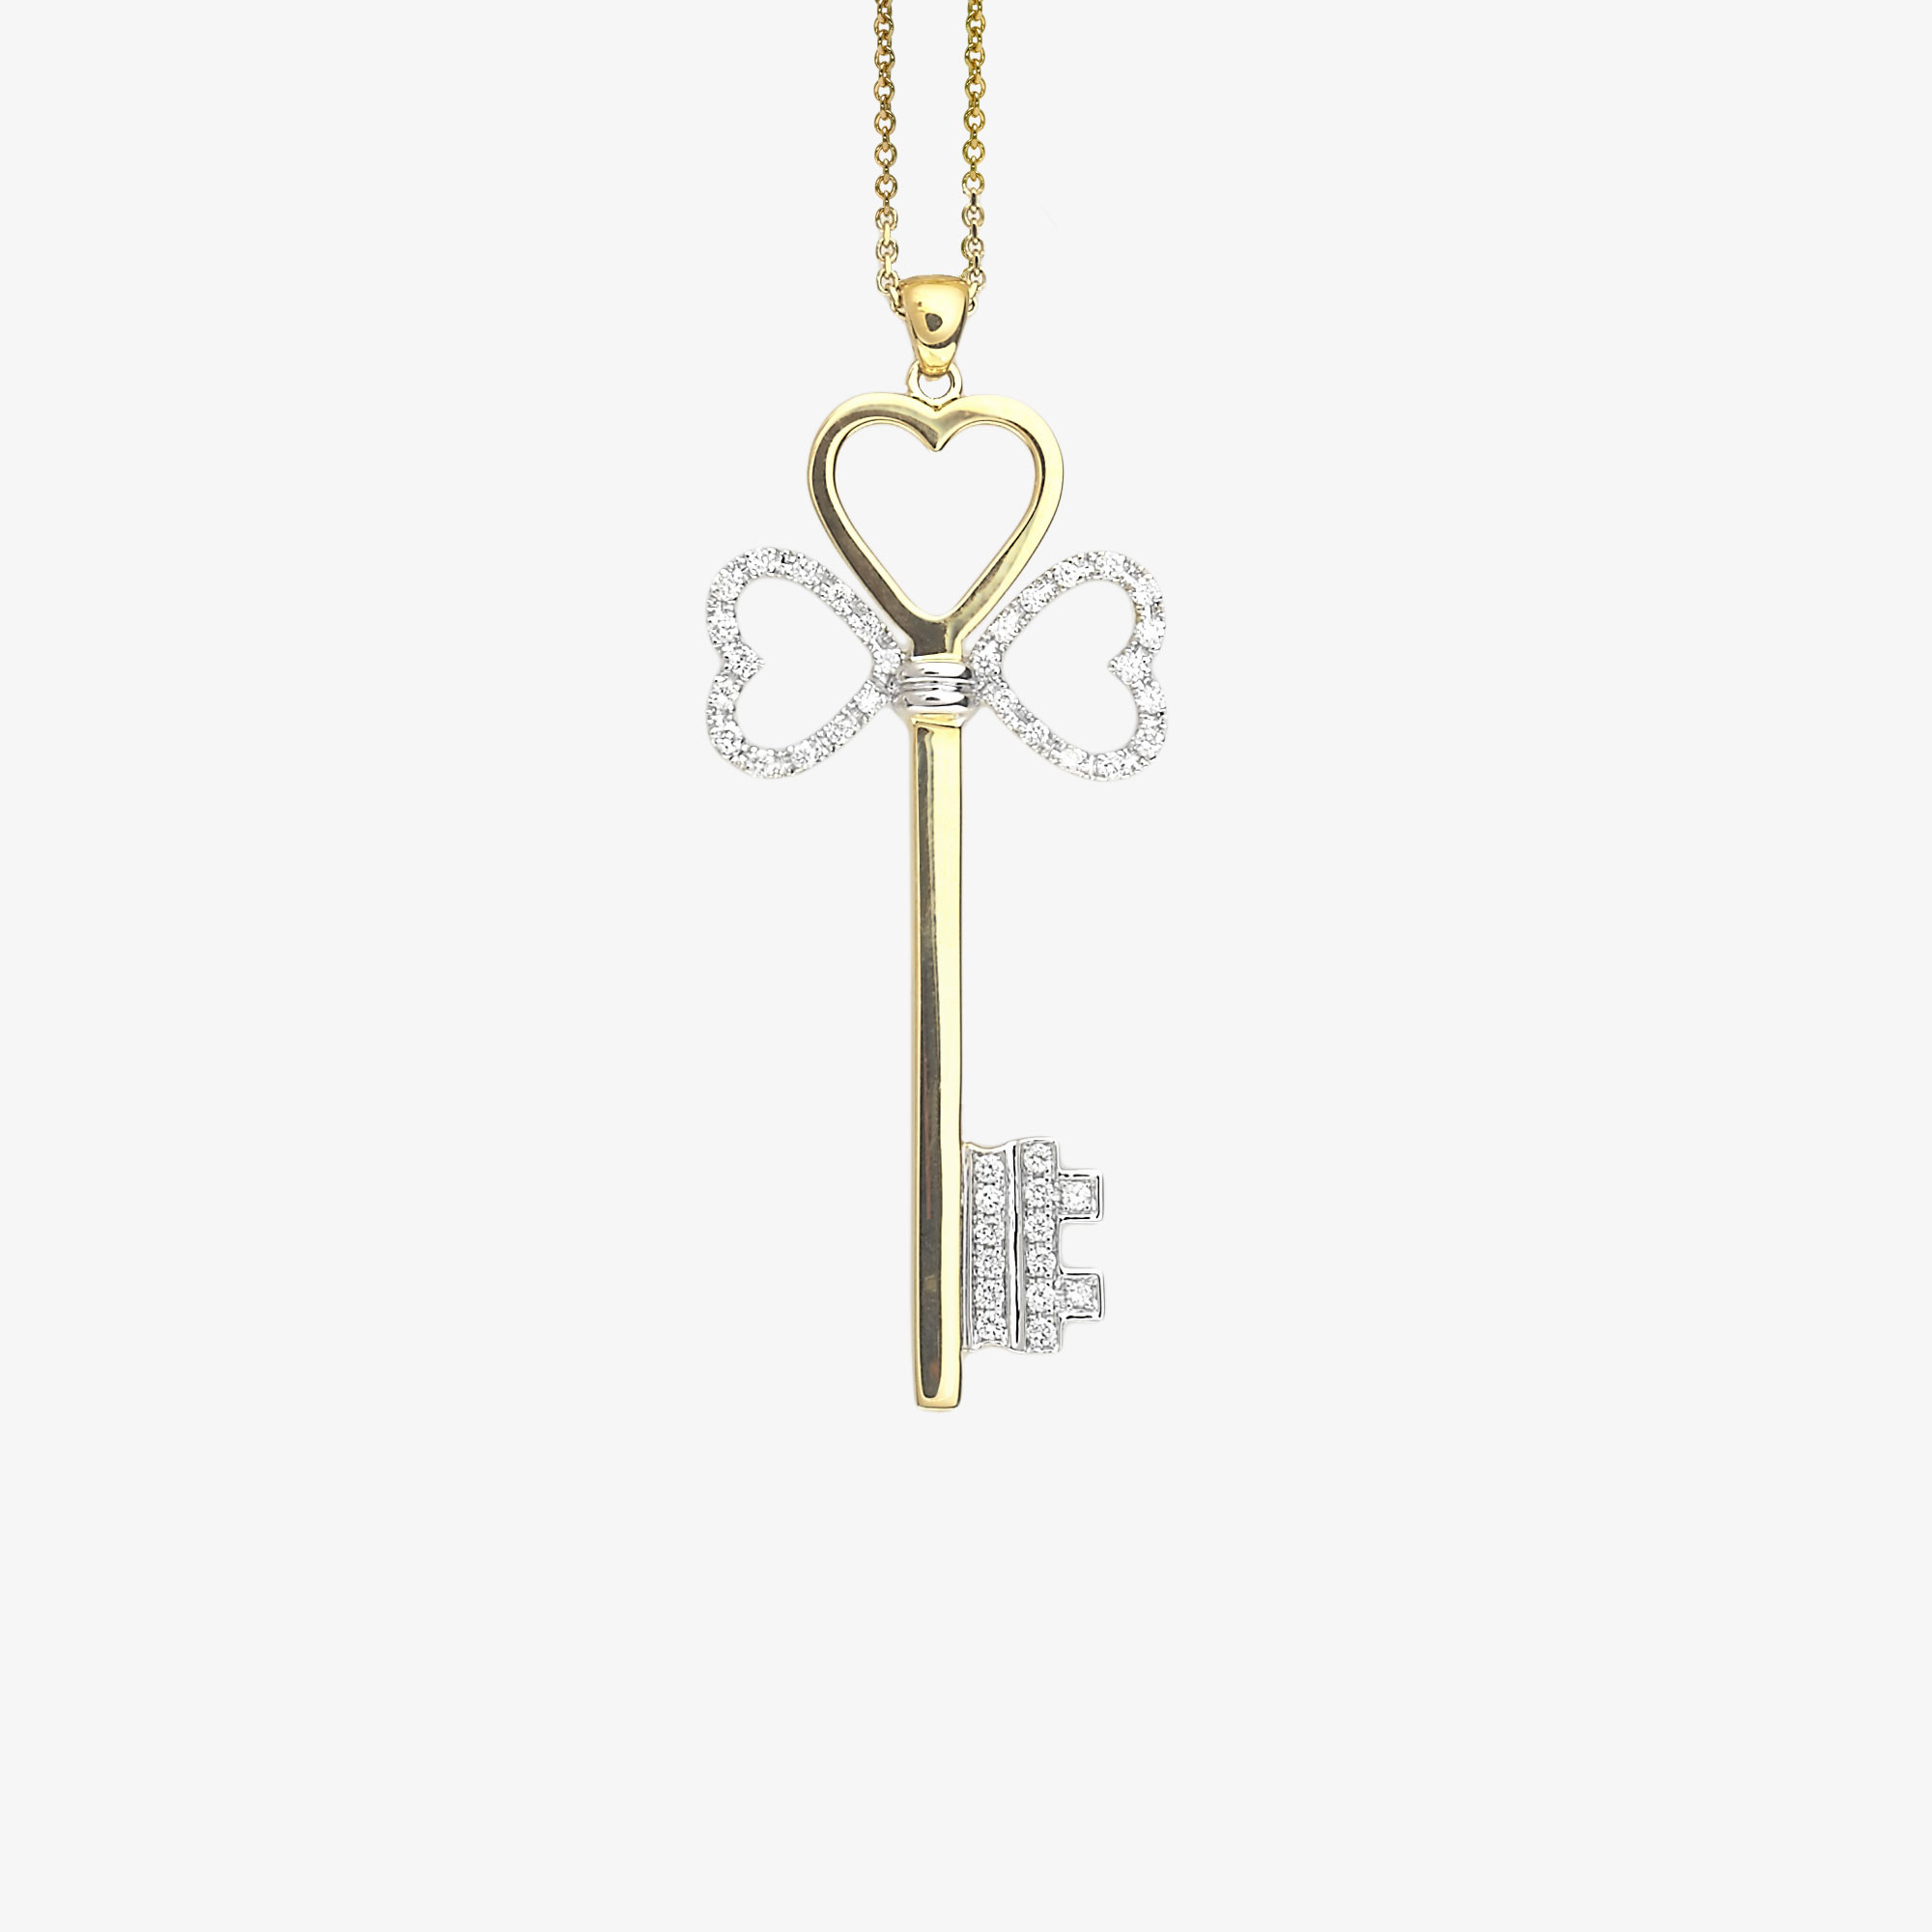 Hearts-key pendant